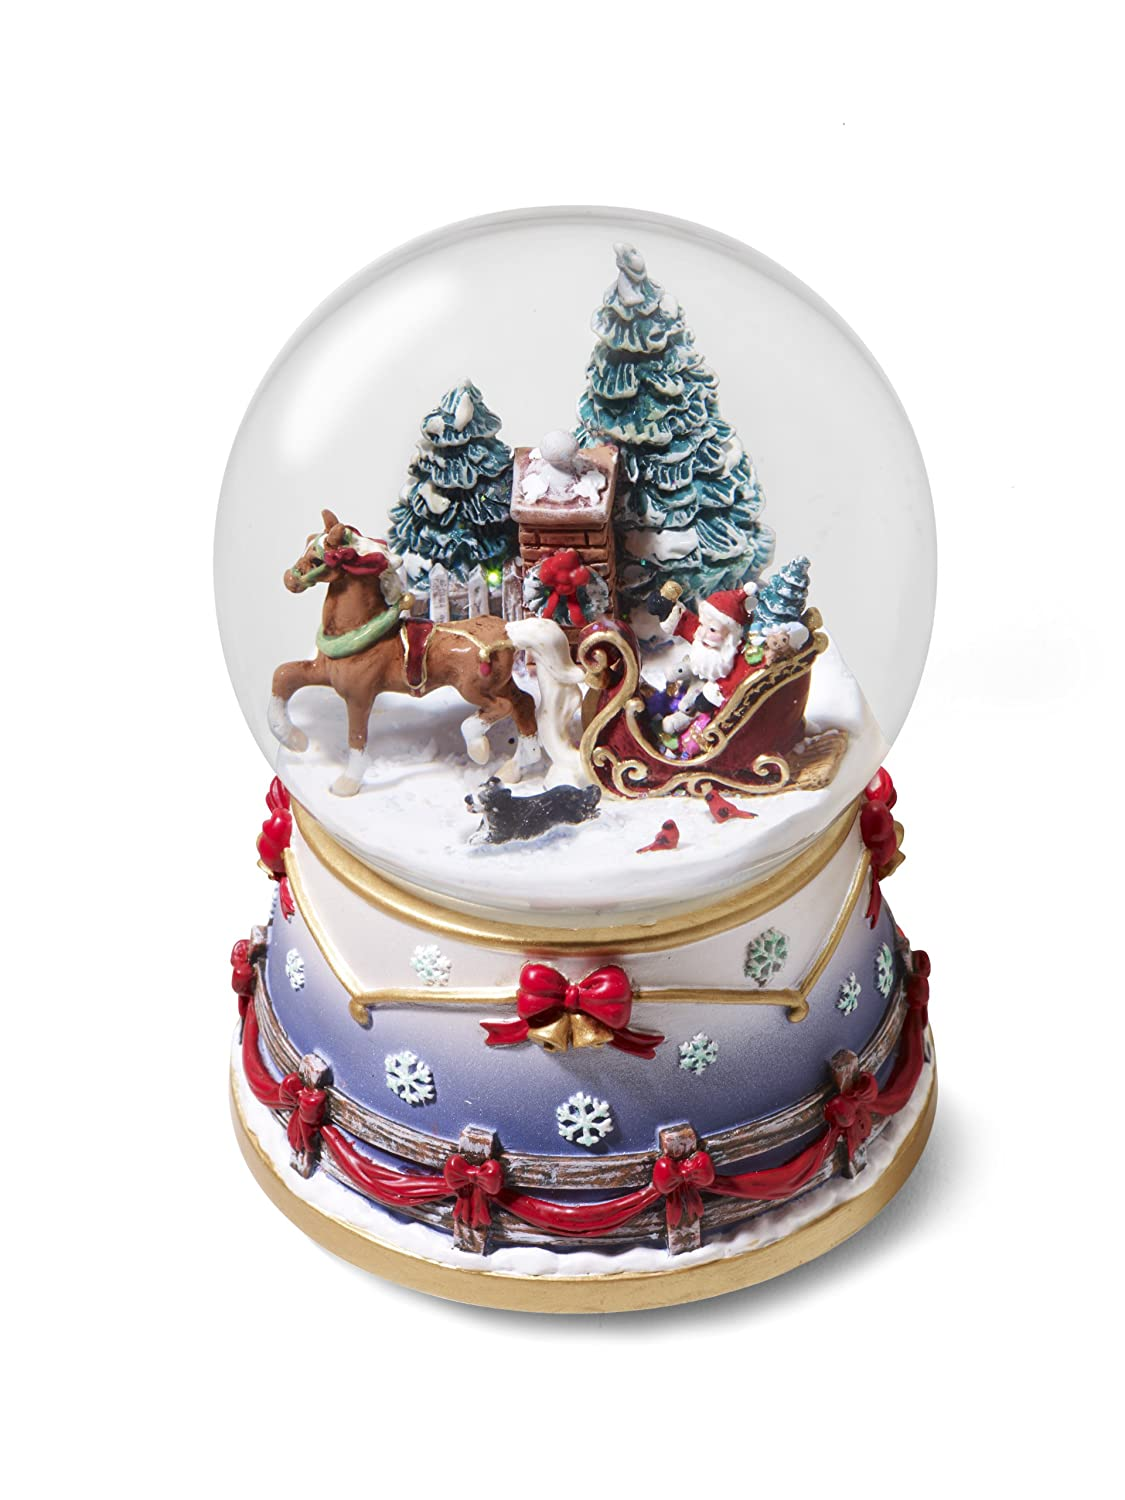 amazoncom holiday homecoming musical snow globe 10th in series toys games - Christmas Musical Snow Globes